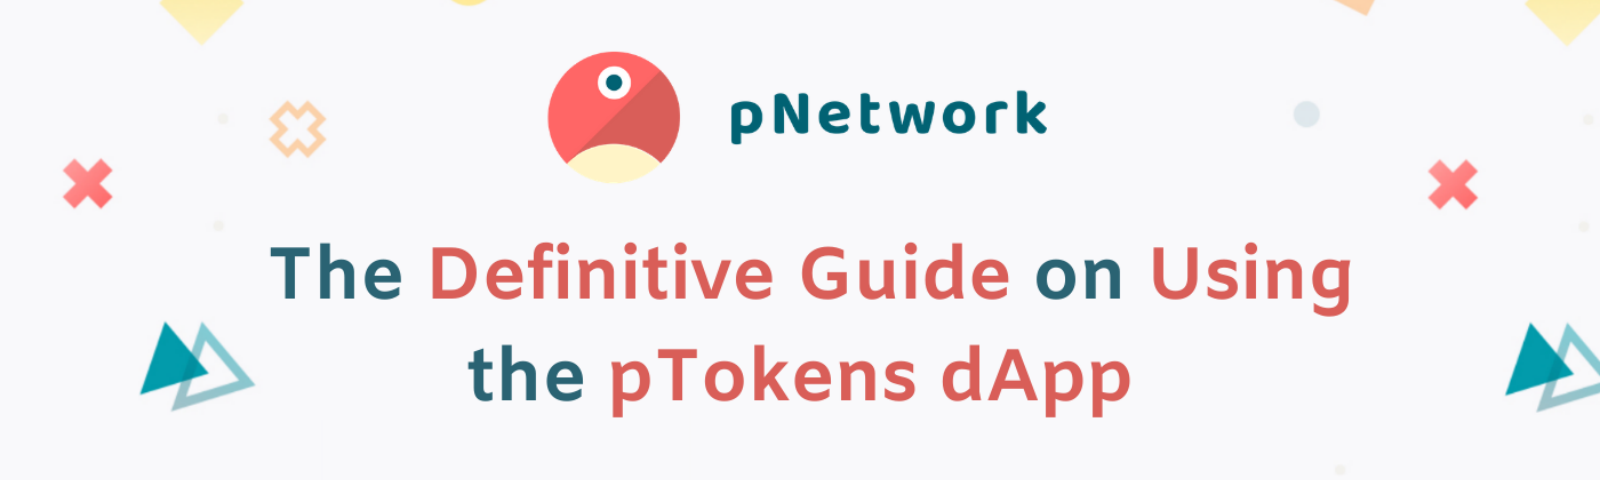 The Definitive Guide on Using the pTokens dApp